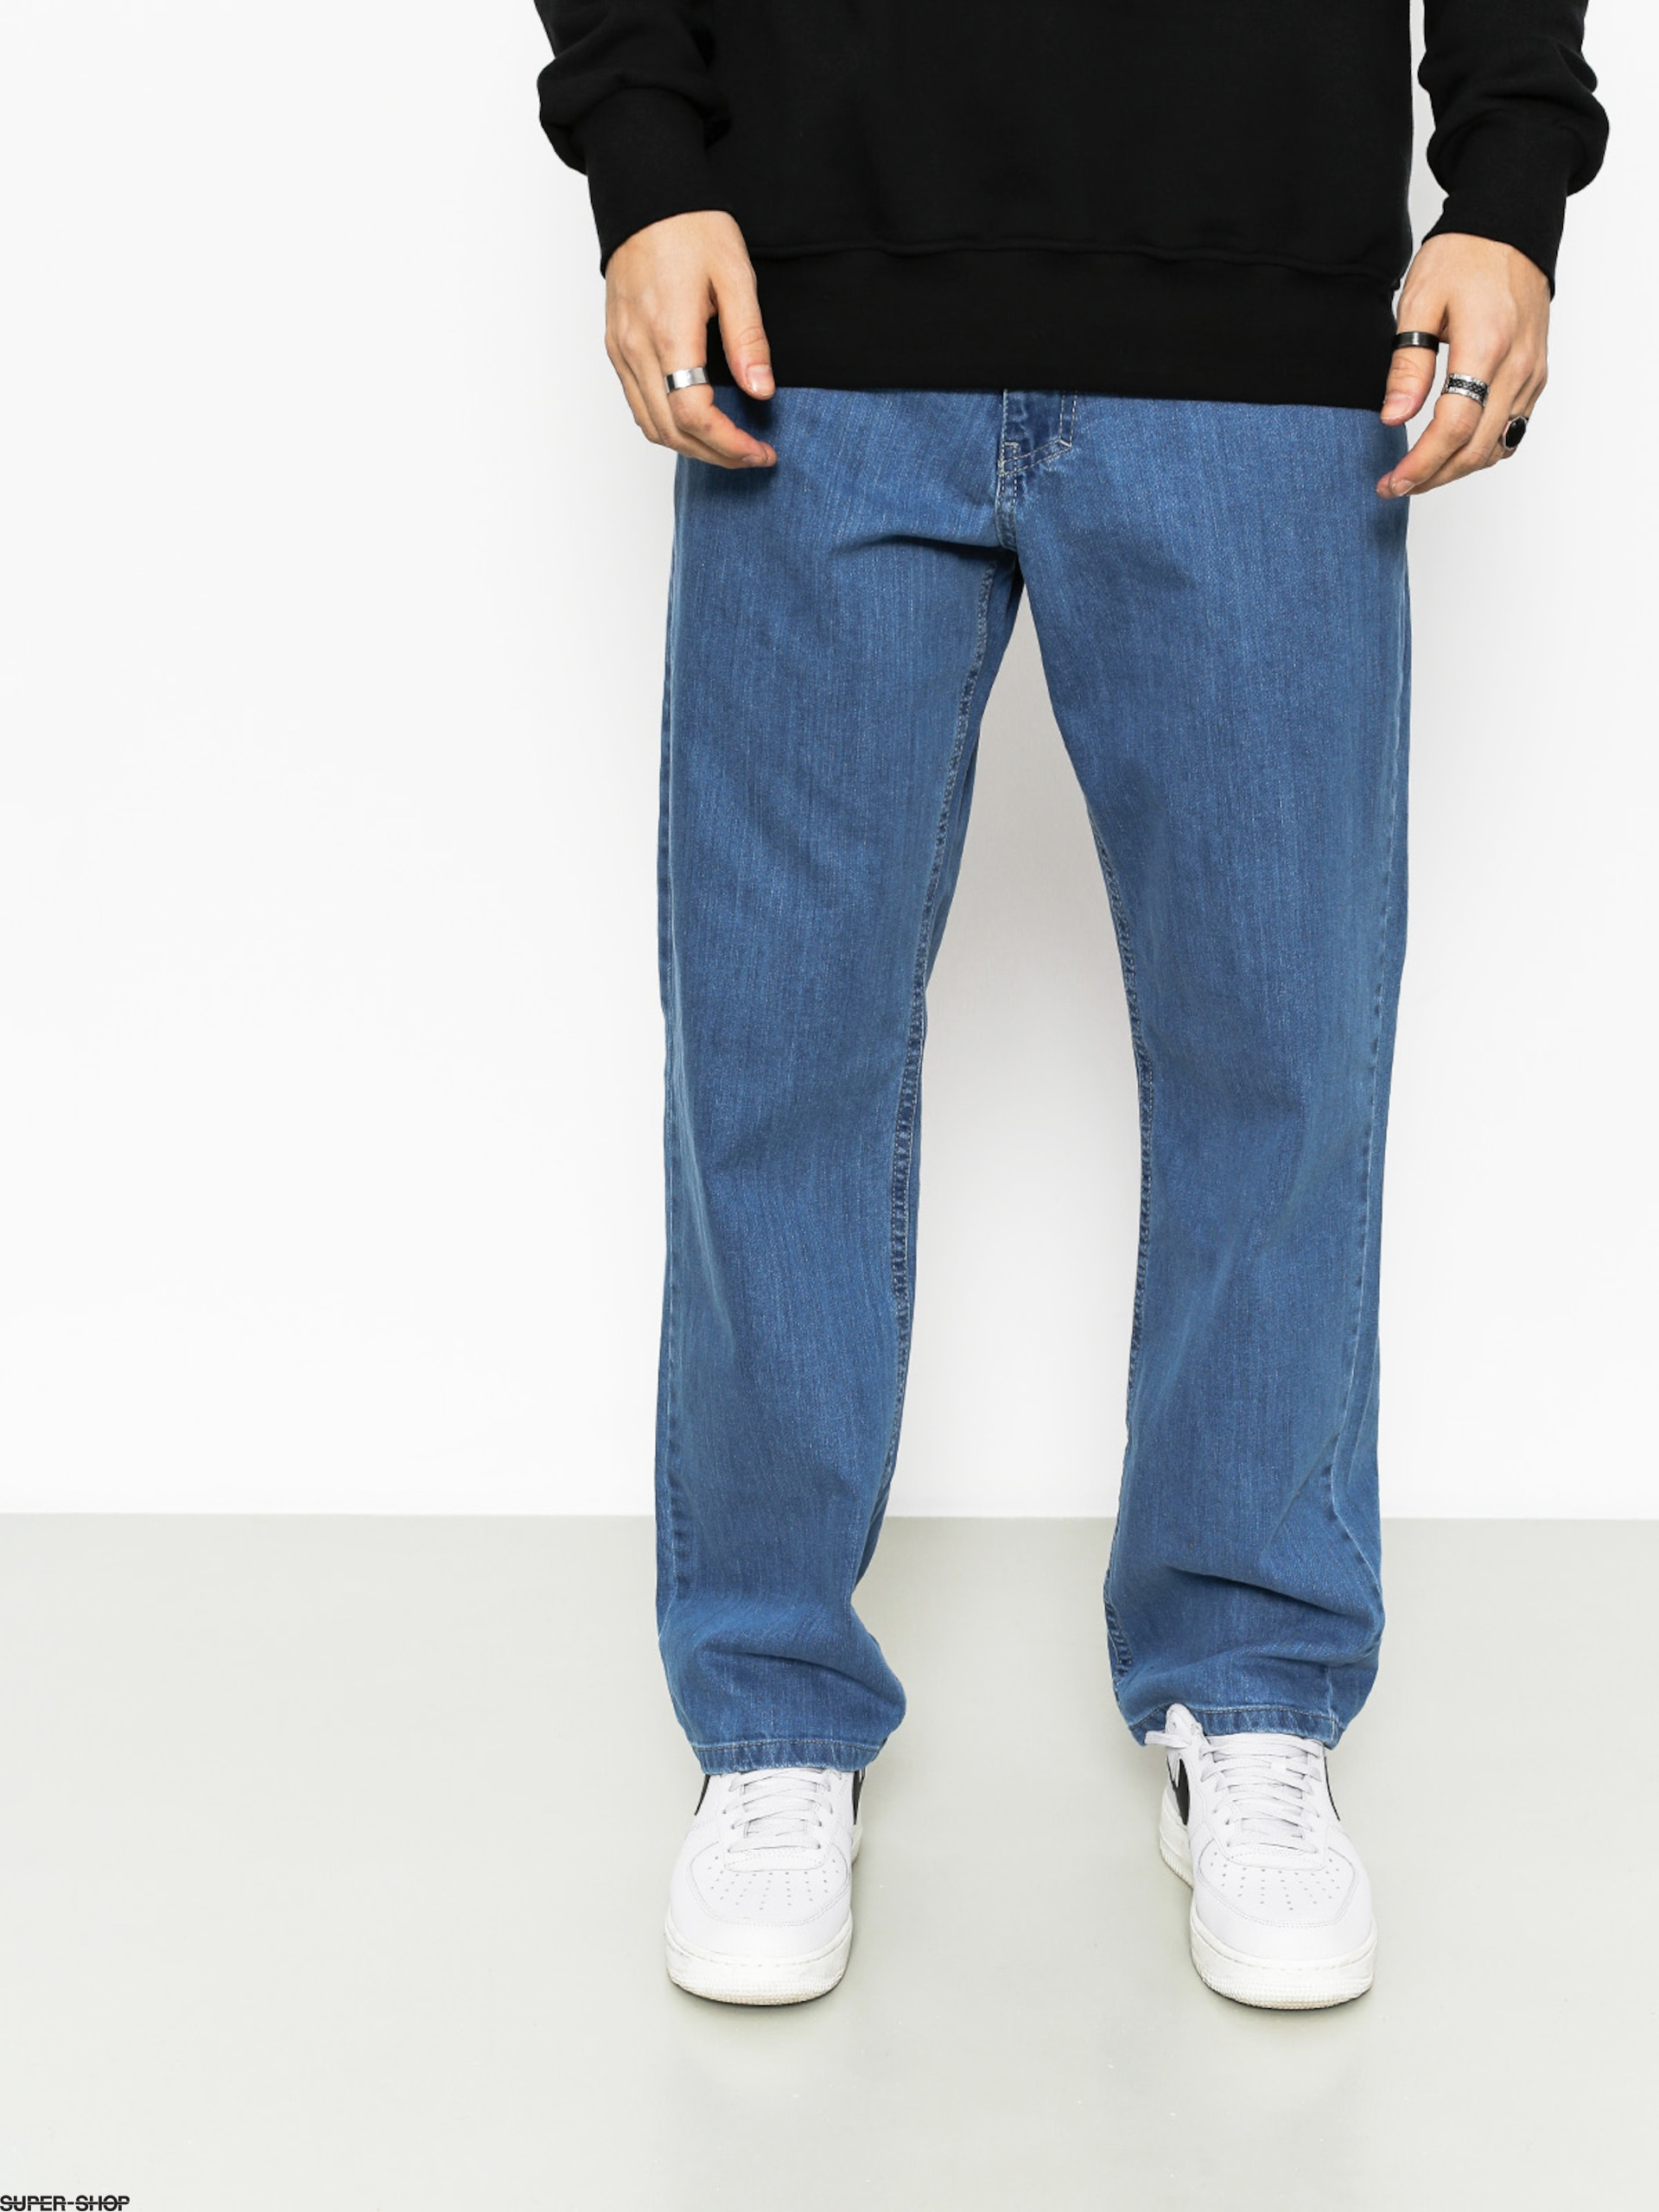 El Polako Pants Ep Regular Outline Jeans (light)